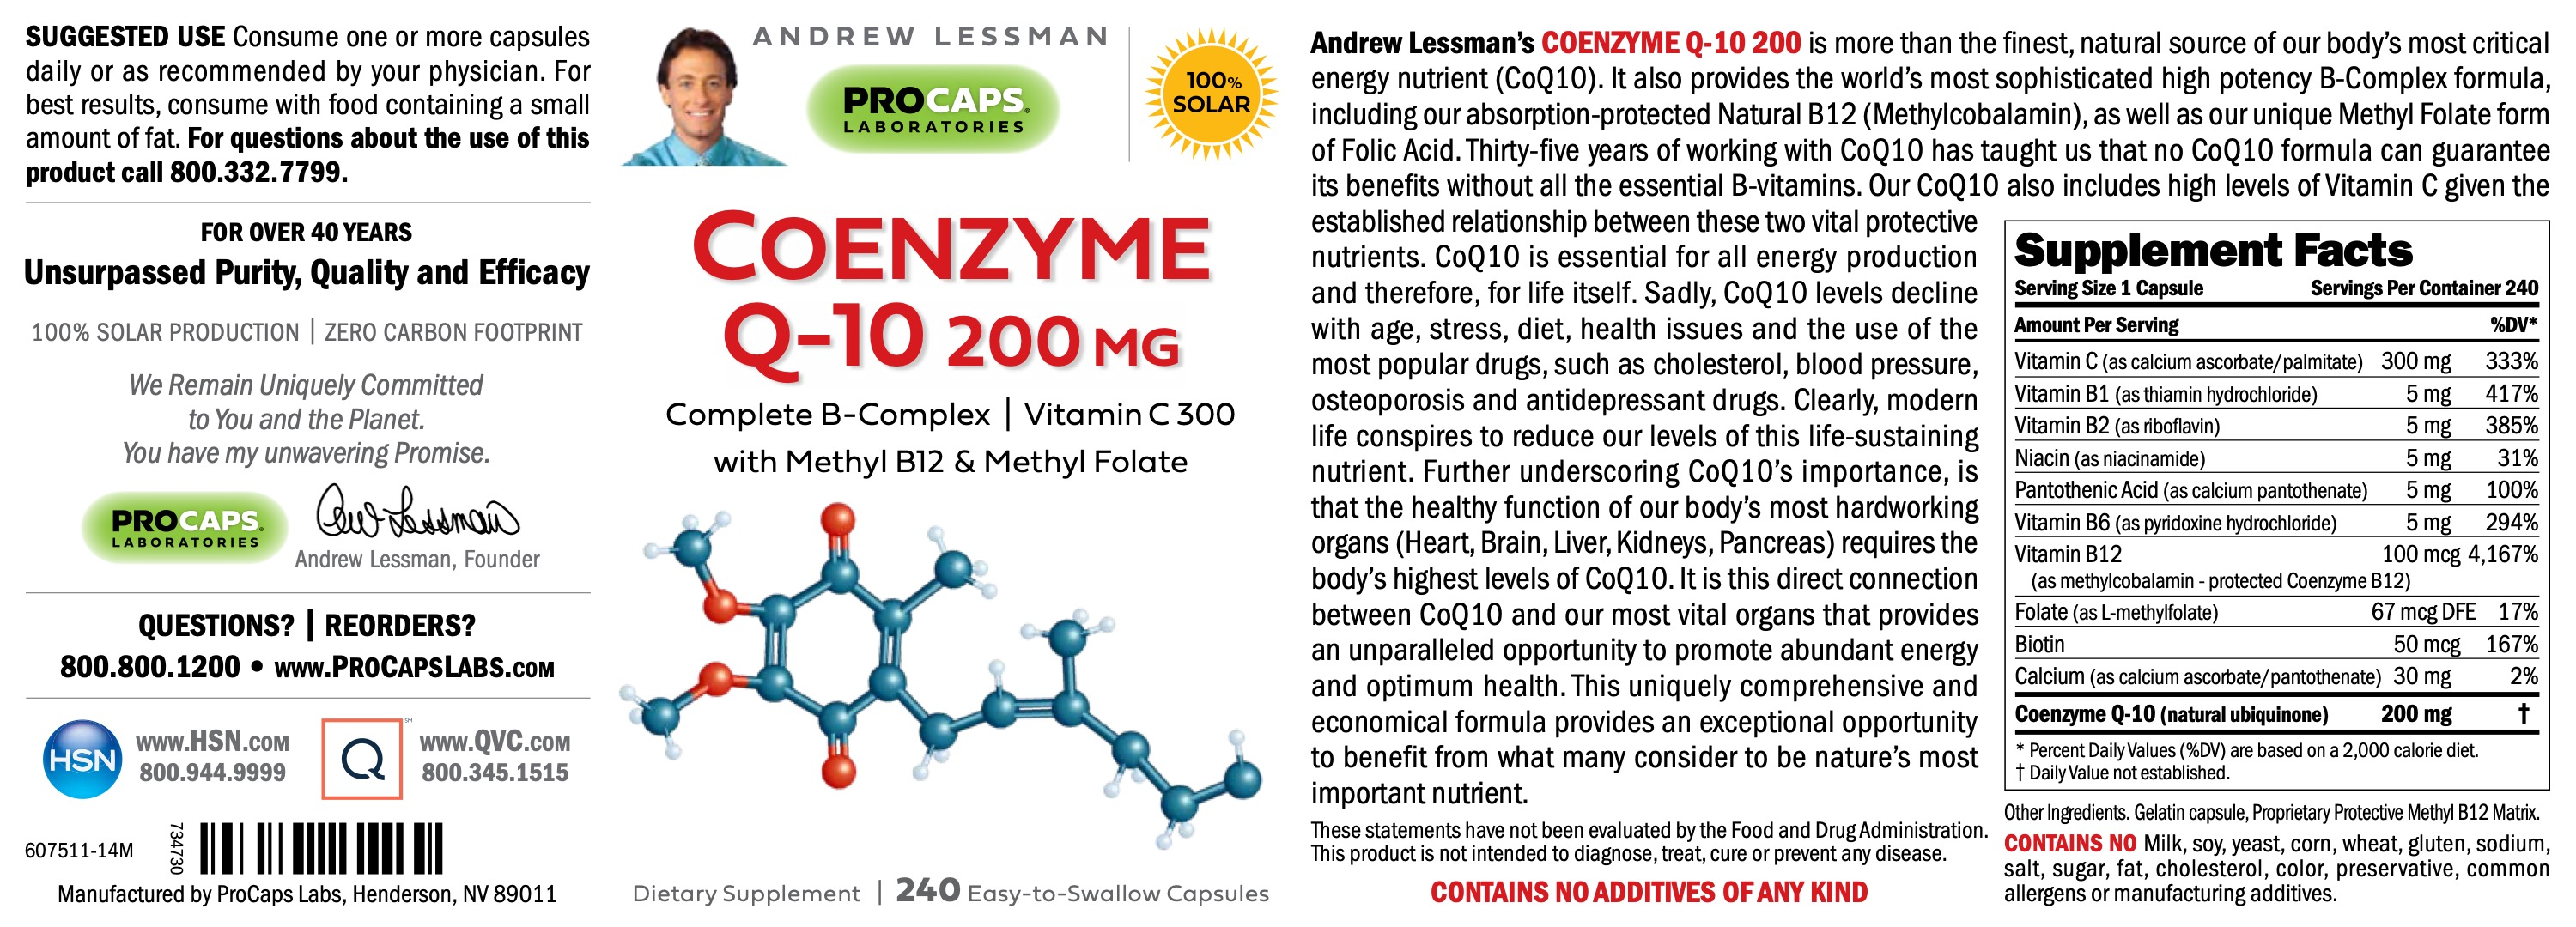 CoEnzyme-Q-10-200-mg-Capsules-Anti-oxidants